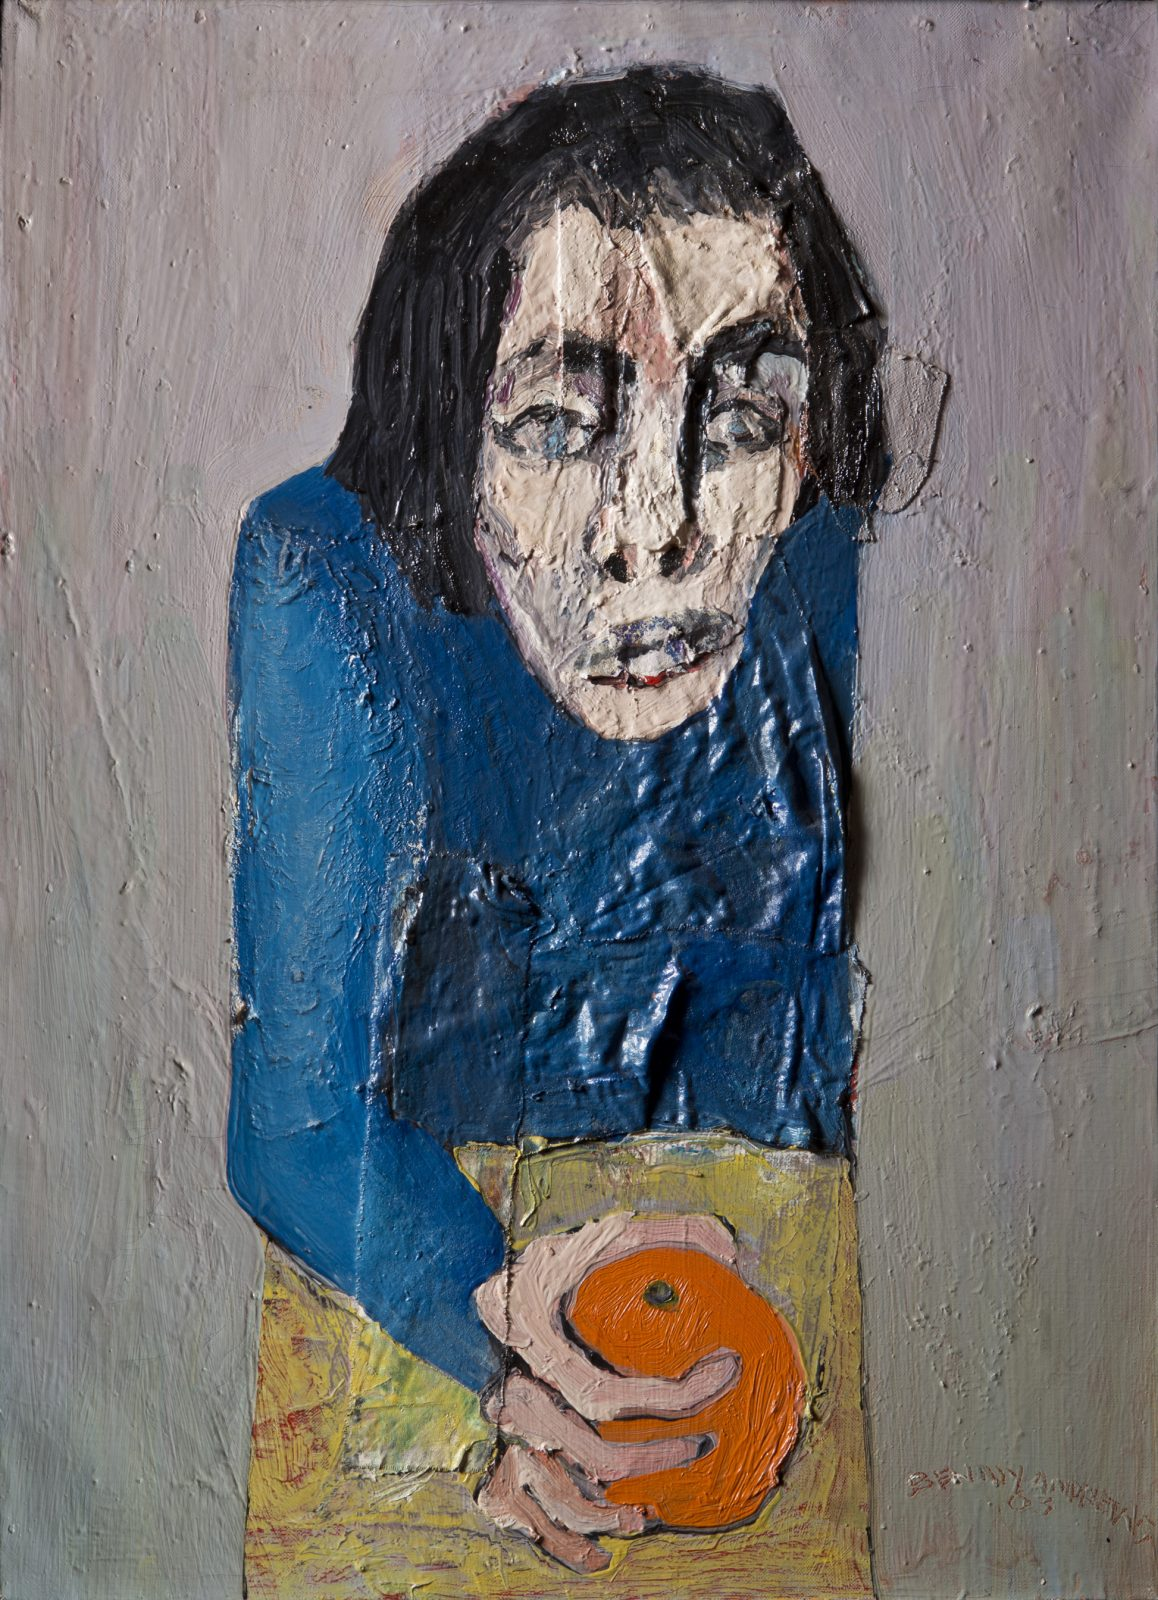 This painting by Benny Andrews shows a character in blue holding a fruit